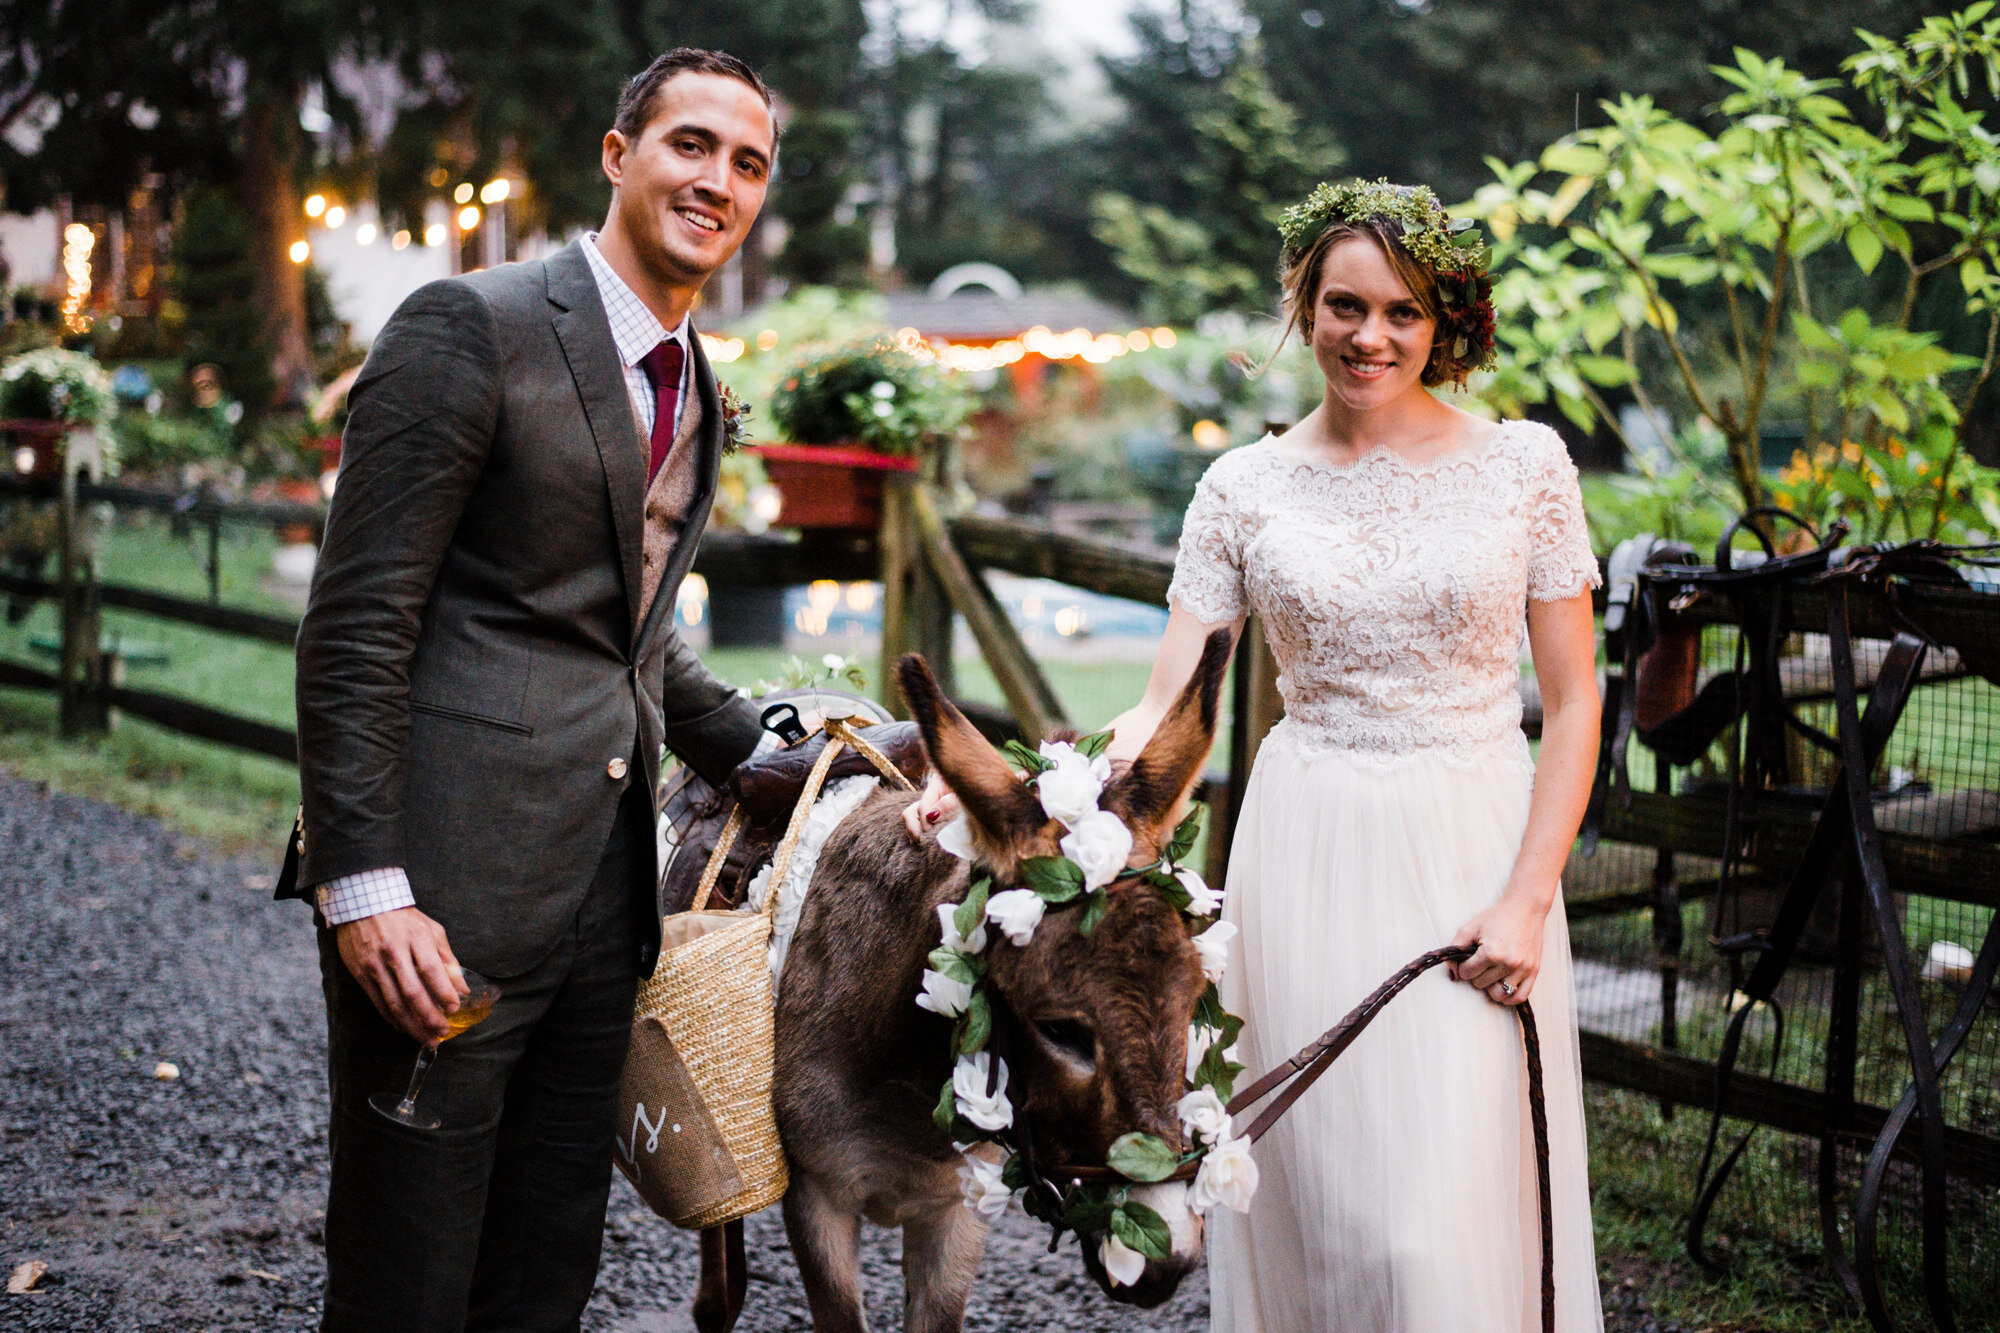 All Weddings Need Beer-Toting Donkeys - Pretty self-explanatory here. We had Heather's aunt Pam's donkey, Brownie, outfitted with a custom-made beer basket by her uncle, Steve, for our wedding. Just another day in the life. Happy one year anniversary, babe!